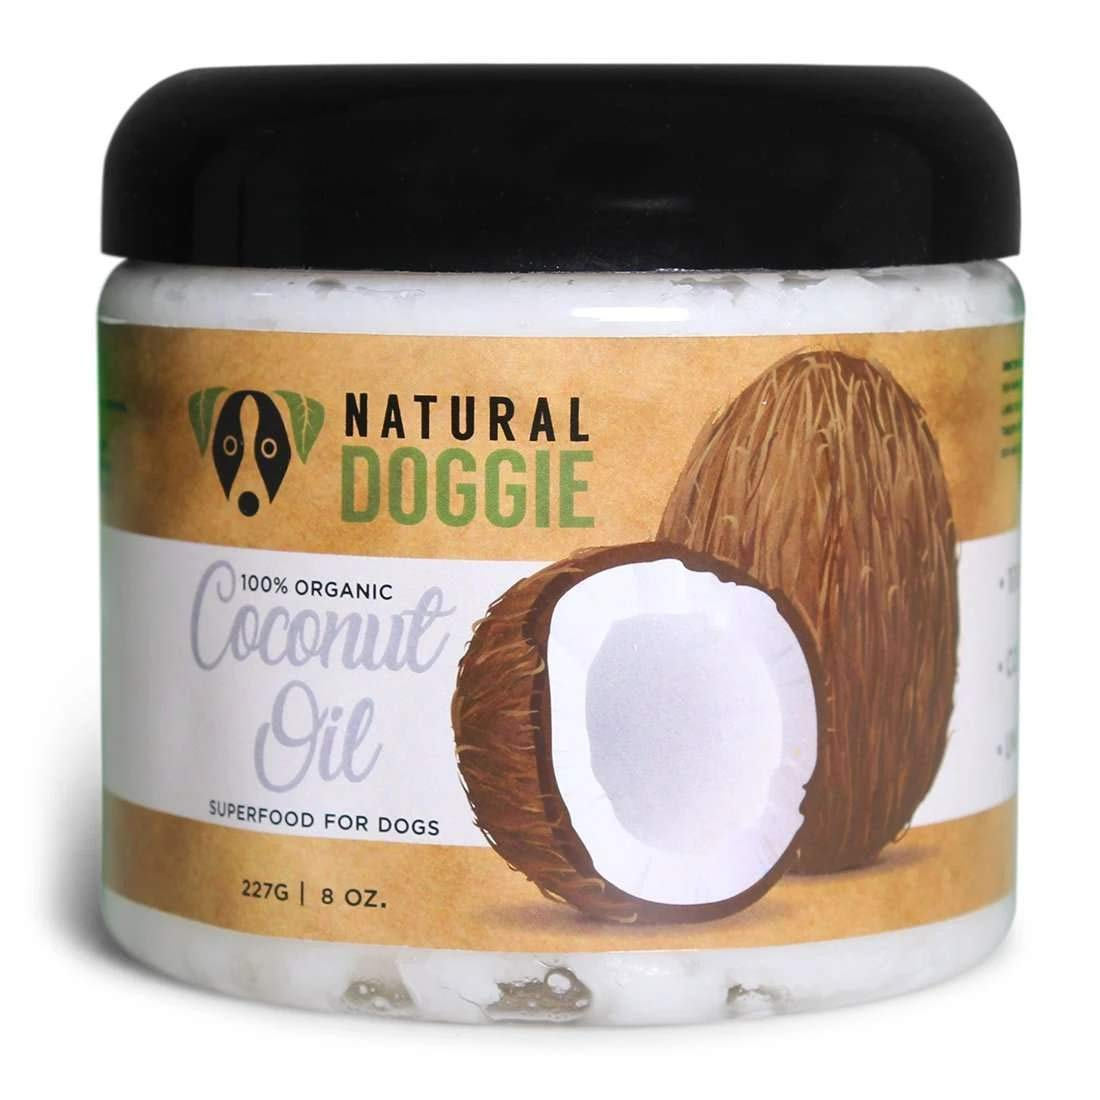 Natural Doggie Pure Organic Virgin Coconut Oil for Dogs for Topical Healing and Food Topper Supplement